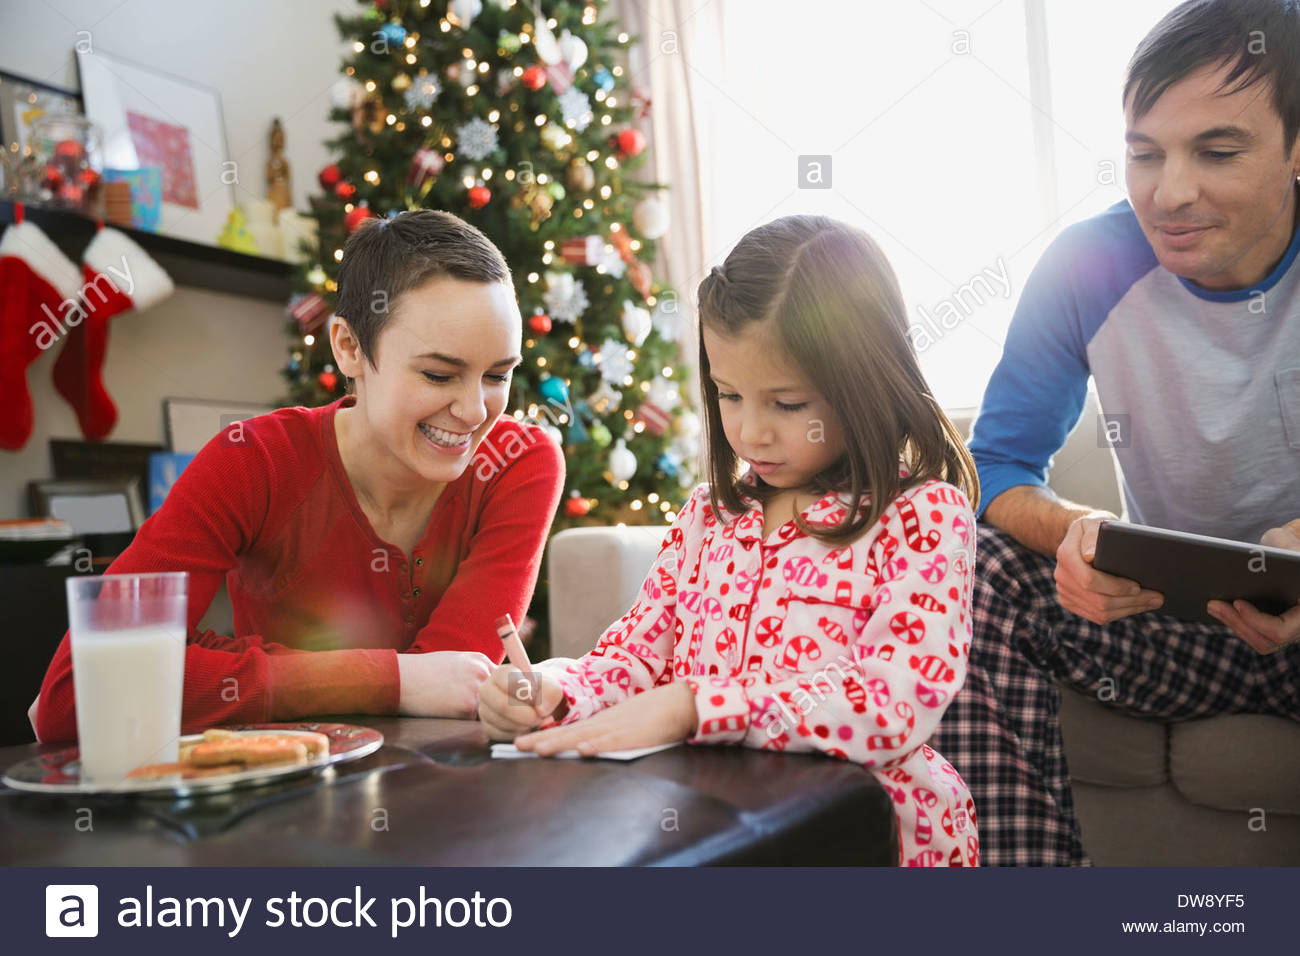 Parents helping girl write letter to Santa Claus - Stock Image